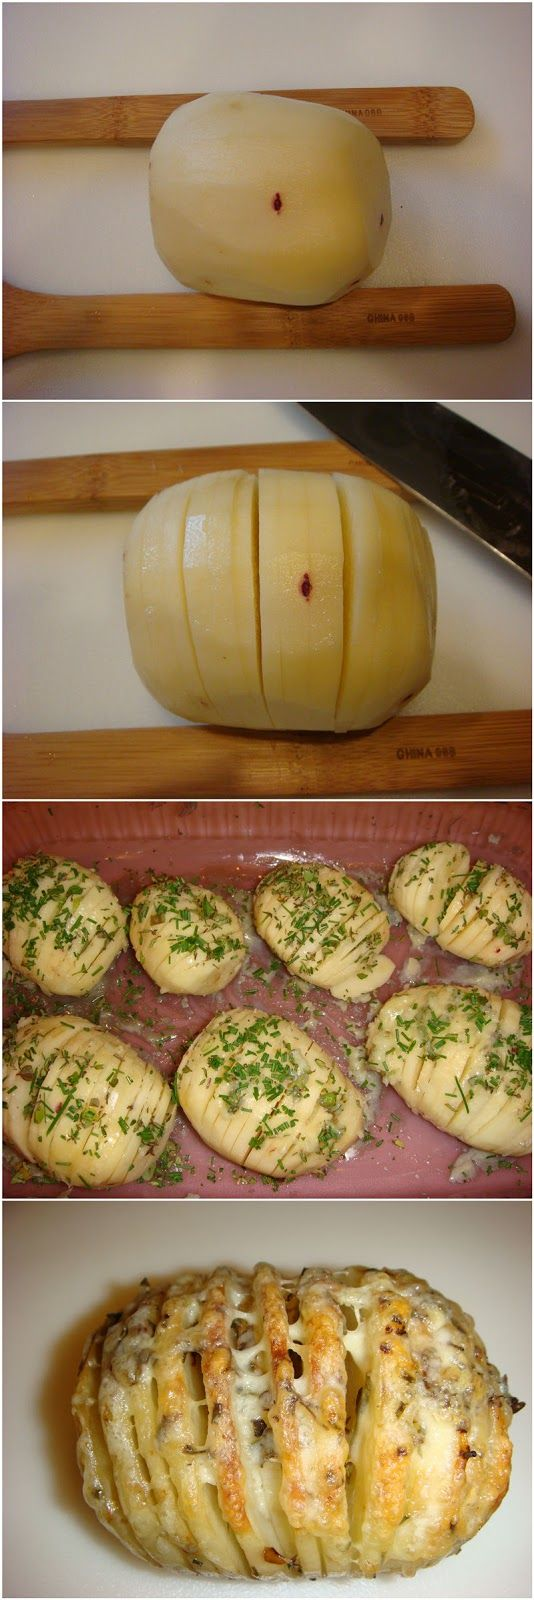 Sliced Baked Potatoes with Herbs and Cheese - use sweet potatoes